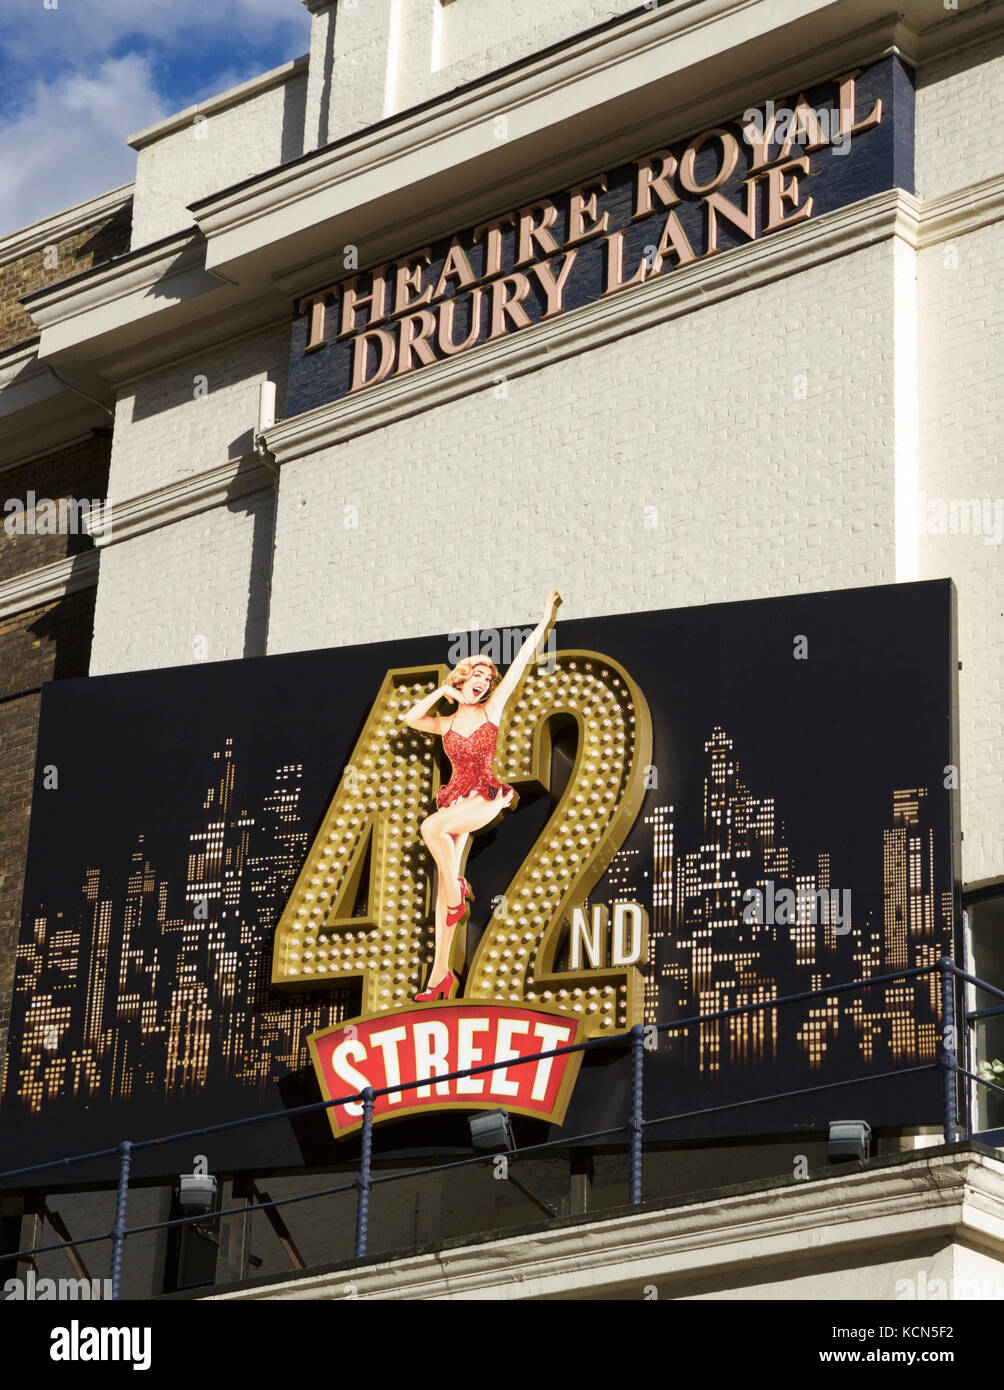 42nd Street, at the Theatre Royal, Dury Lane, London UK. - Stock Image